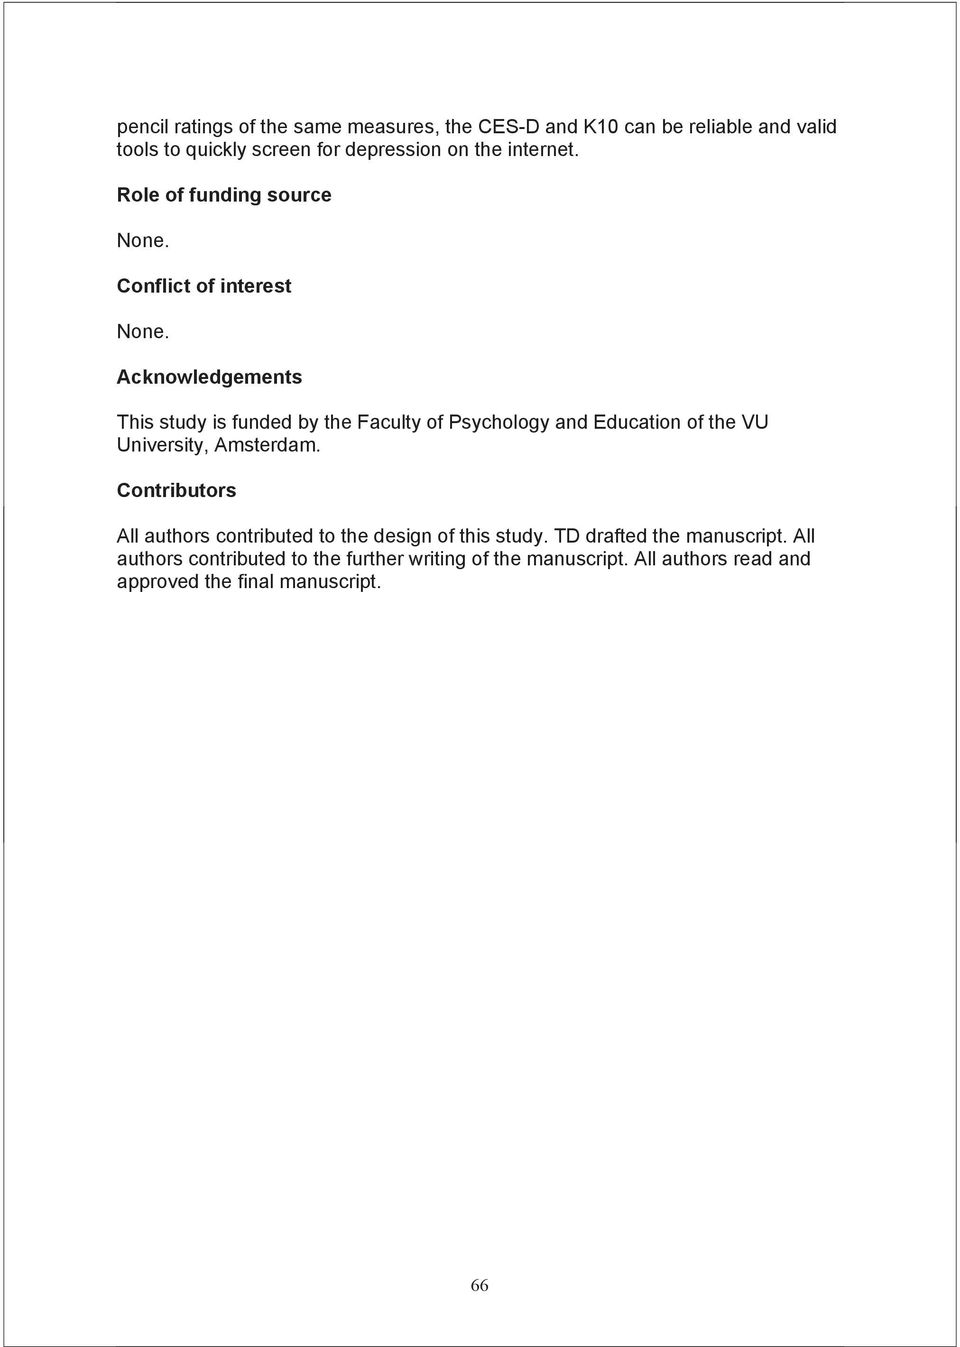 Acknowledgements This study is funded by the Faculty of Psychology and Education of the VU University, Amsterdam.